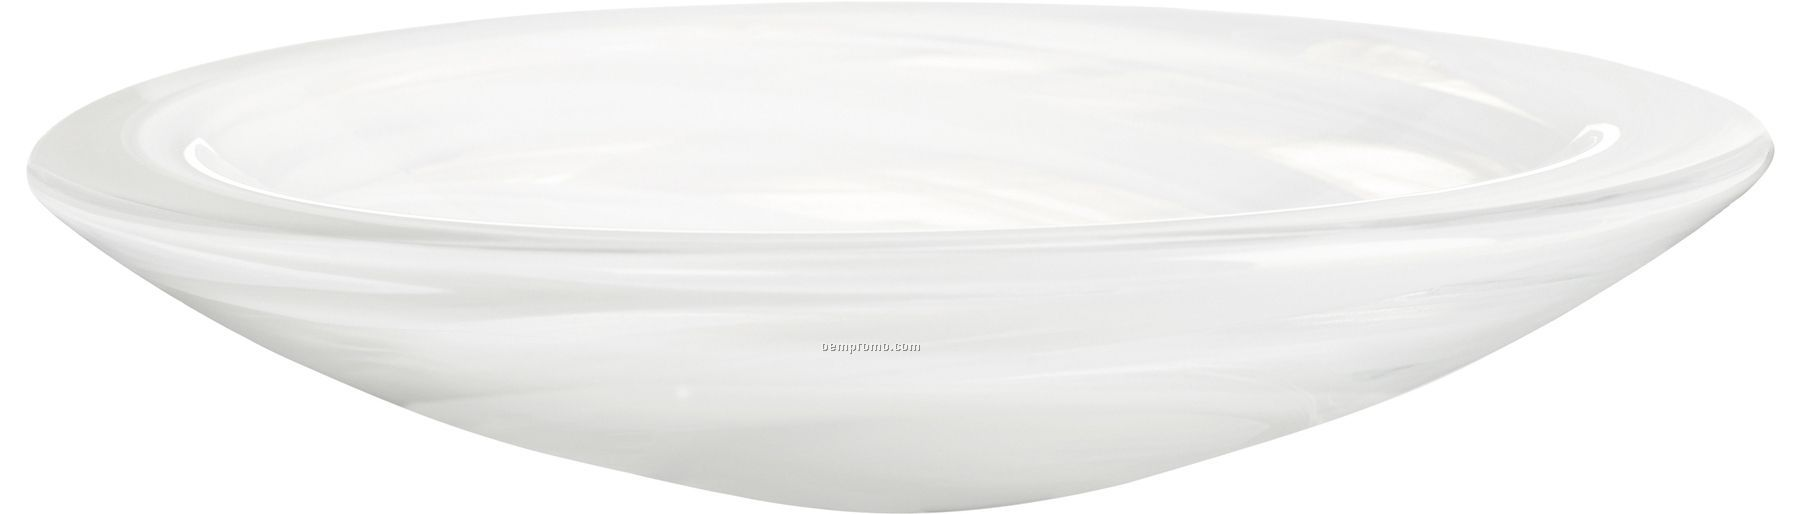 Atoll Marble Look Dish By Anna Ehrner (White)